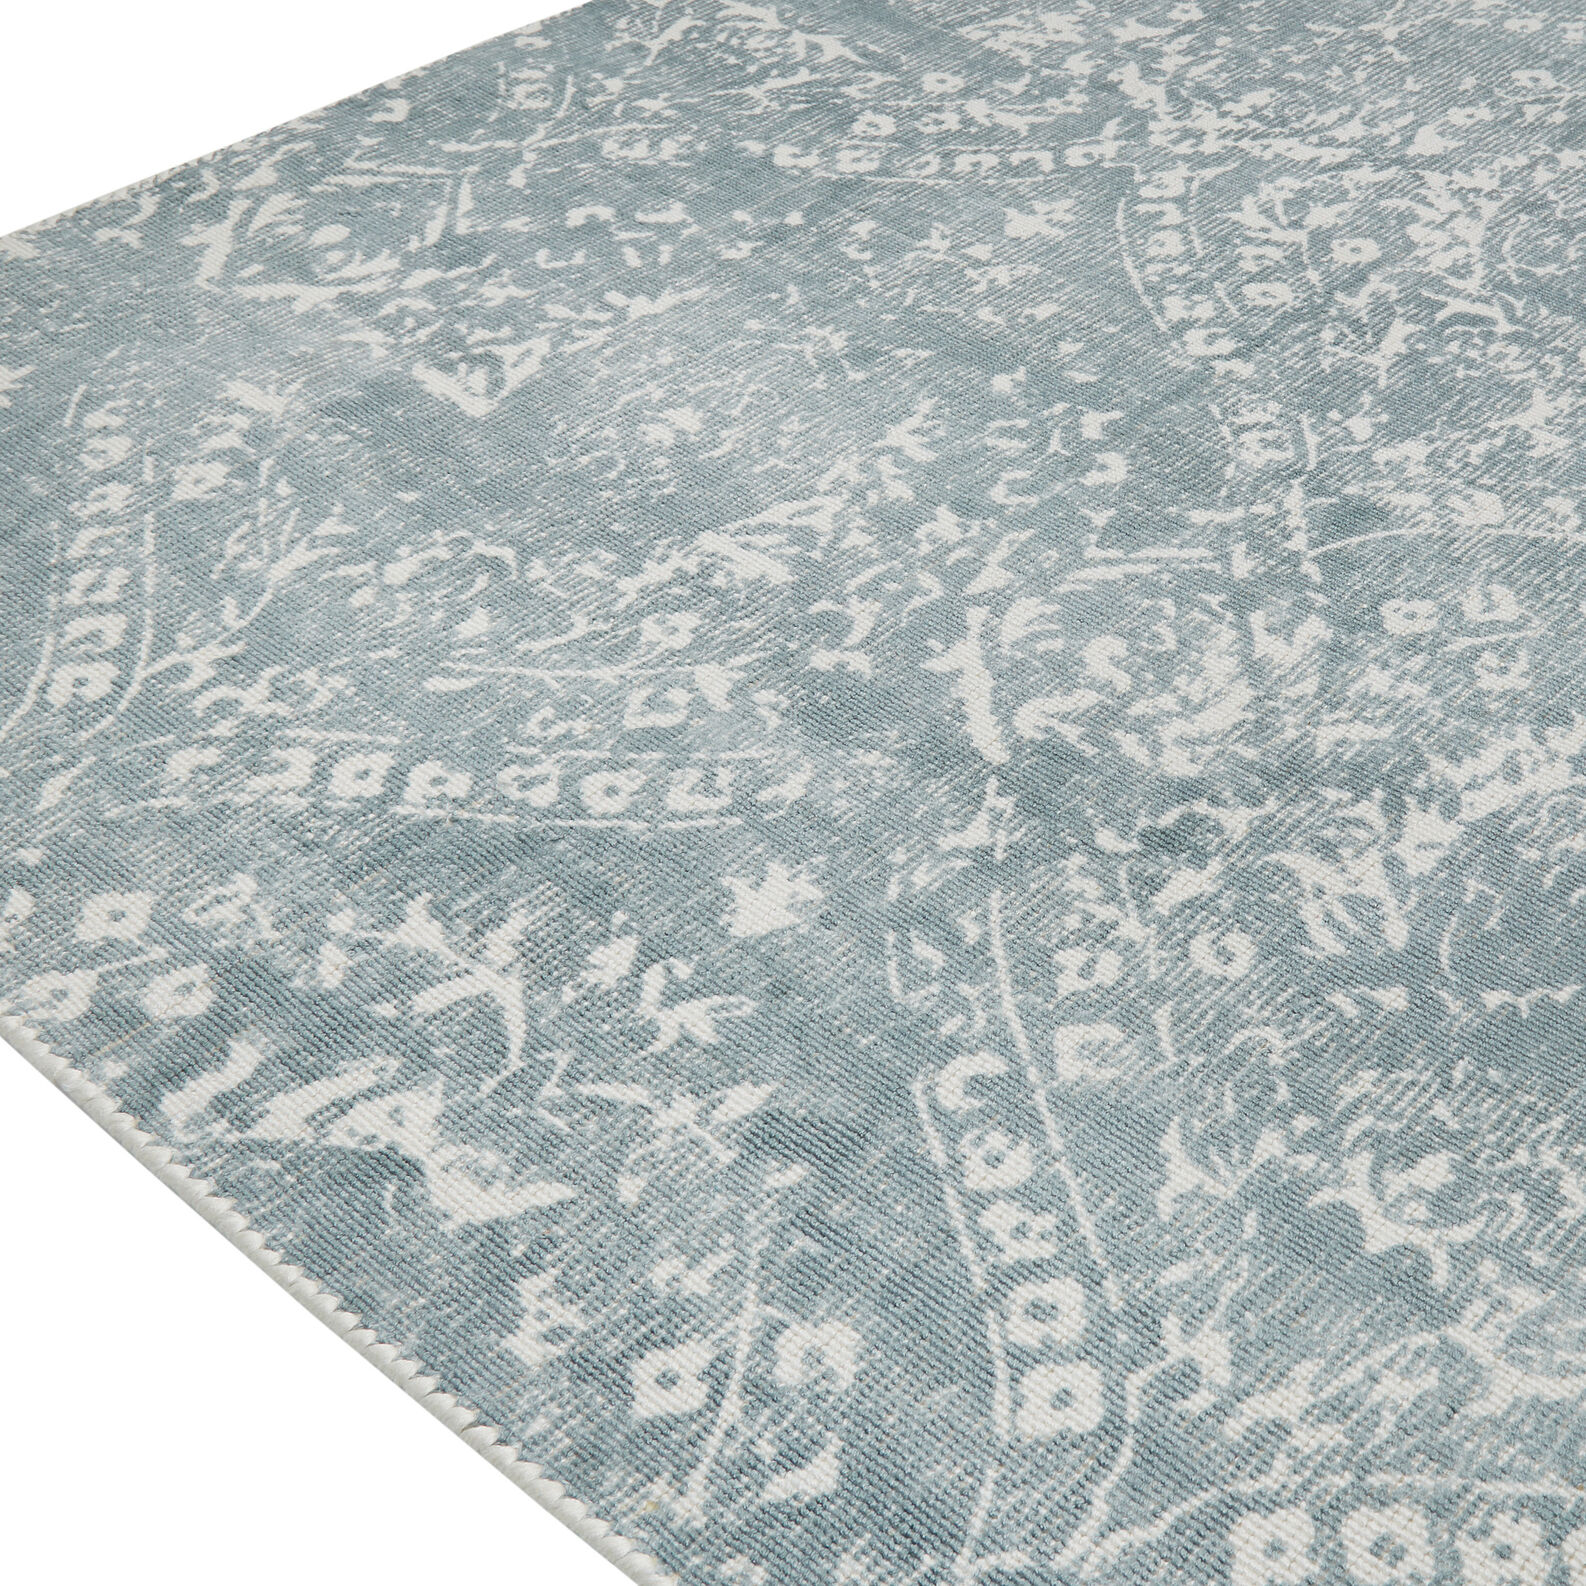 Hand-printed rug in cotton blend